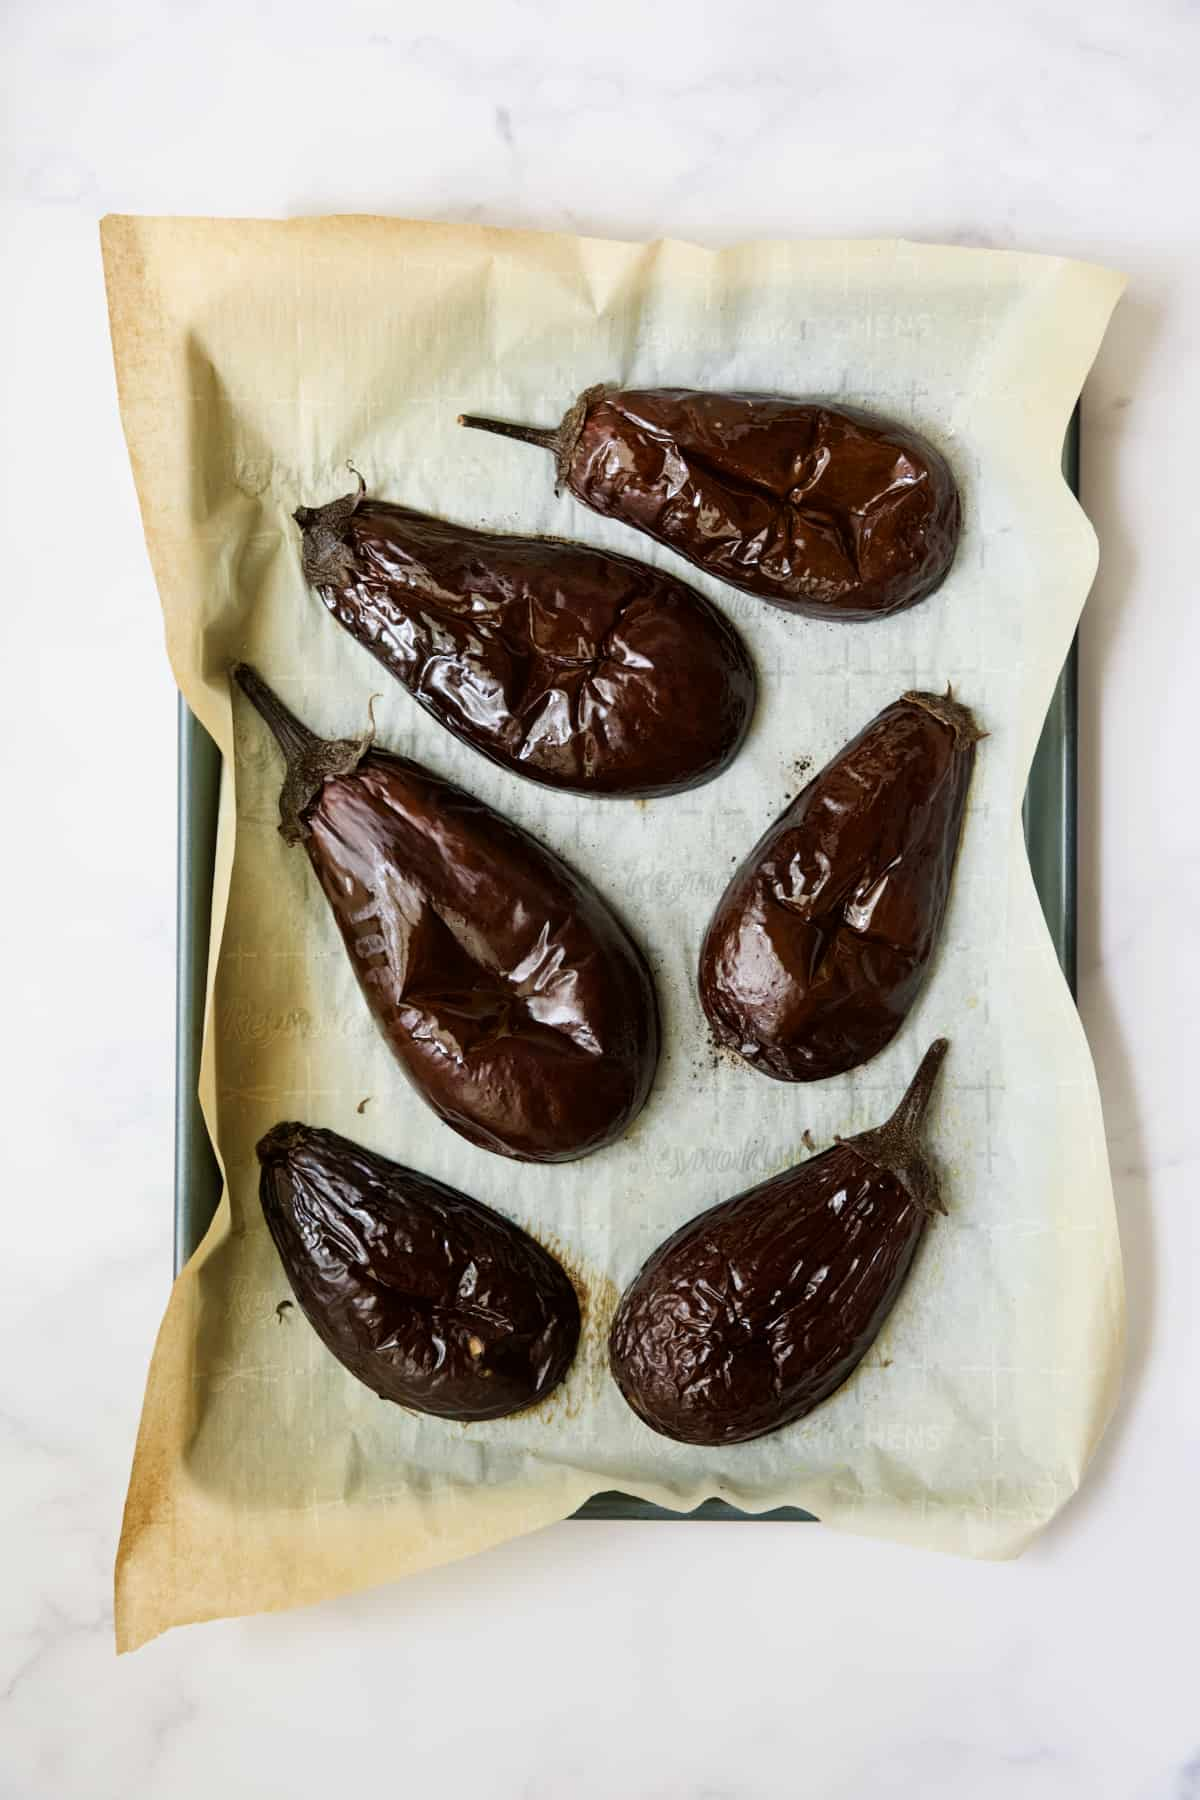 Six roasted eggplant halves on parchment paper-lined baking sheet.